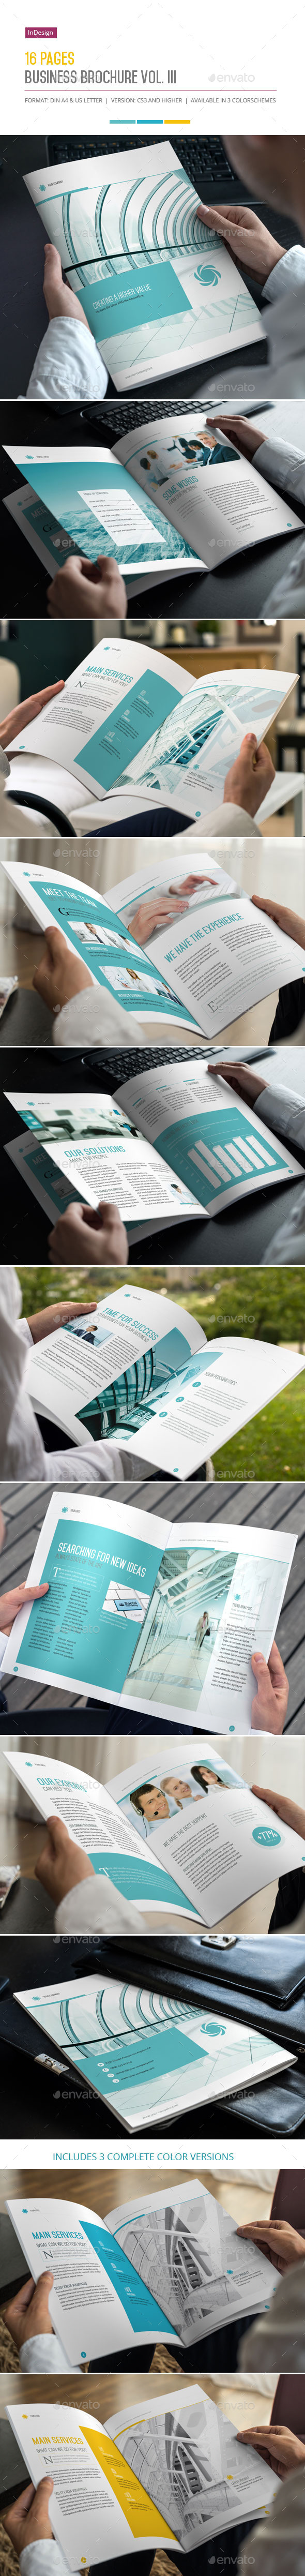 GraphicRiver 16 Pages Business Brochure Vol III 10057279